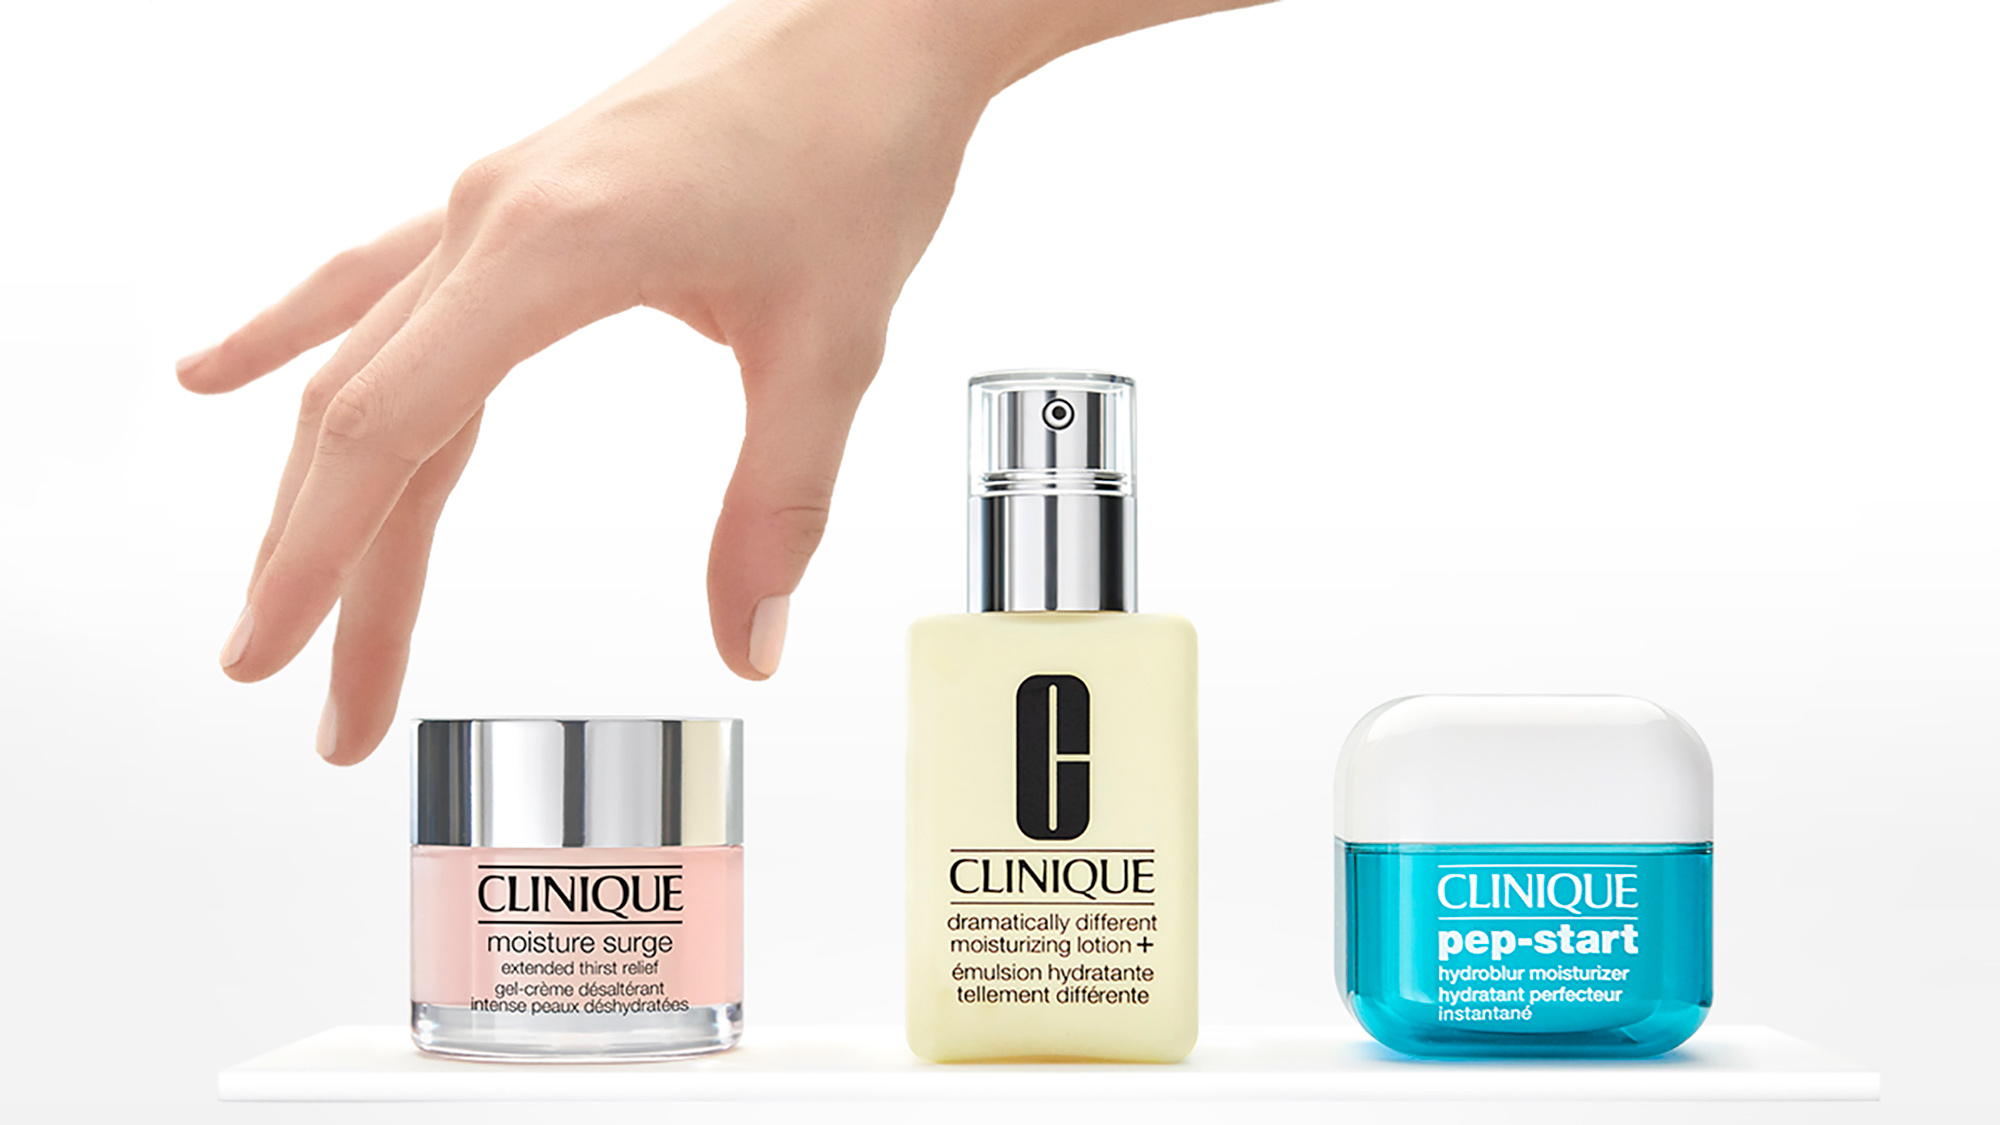 3 ways to hydrate: find the right moisturiser to suit your skin